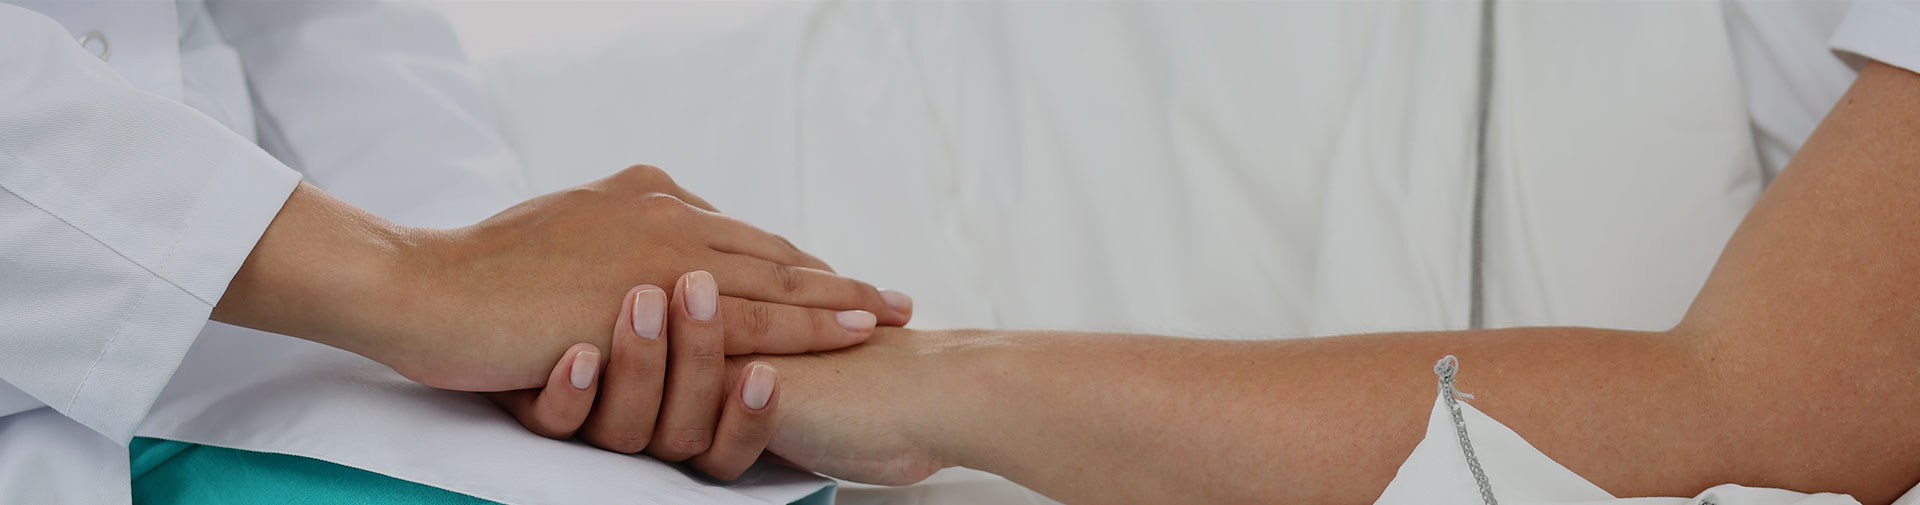 KFCP offers patient programs for both patients and caregivers